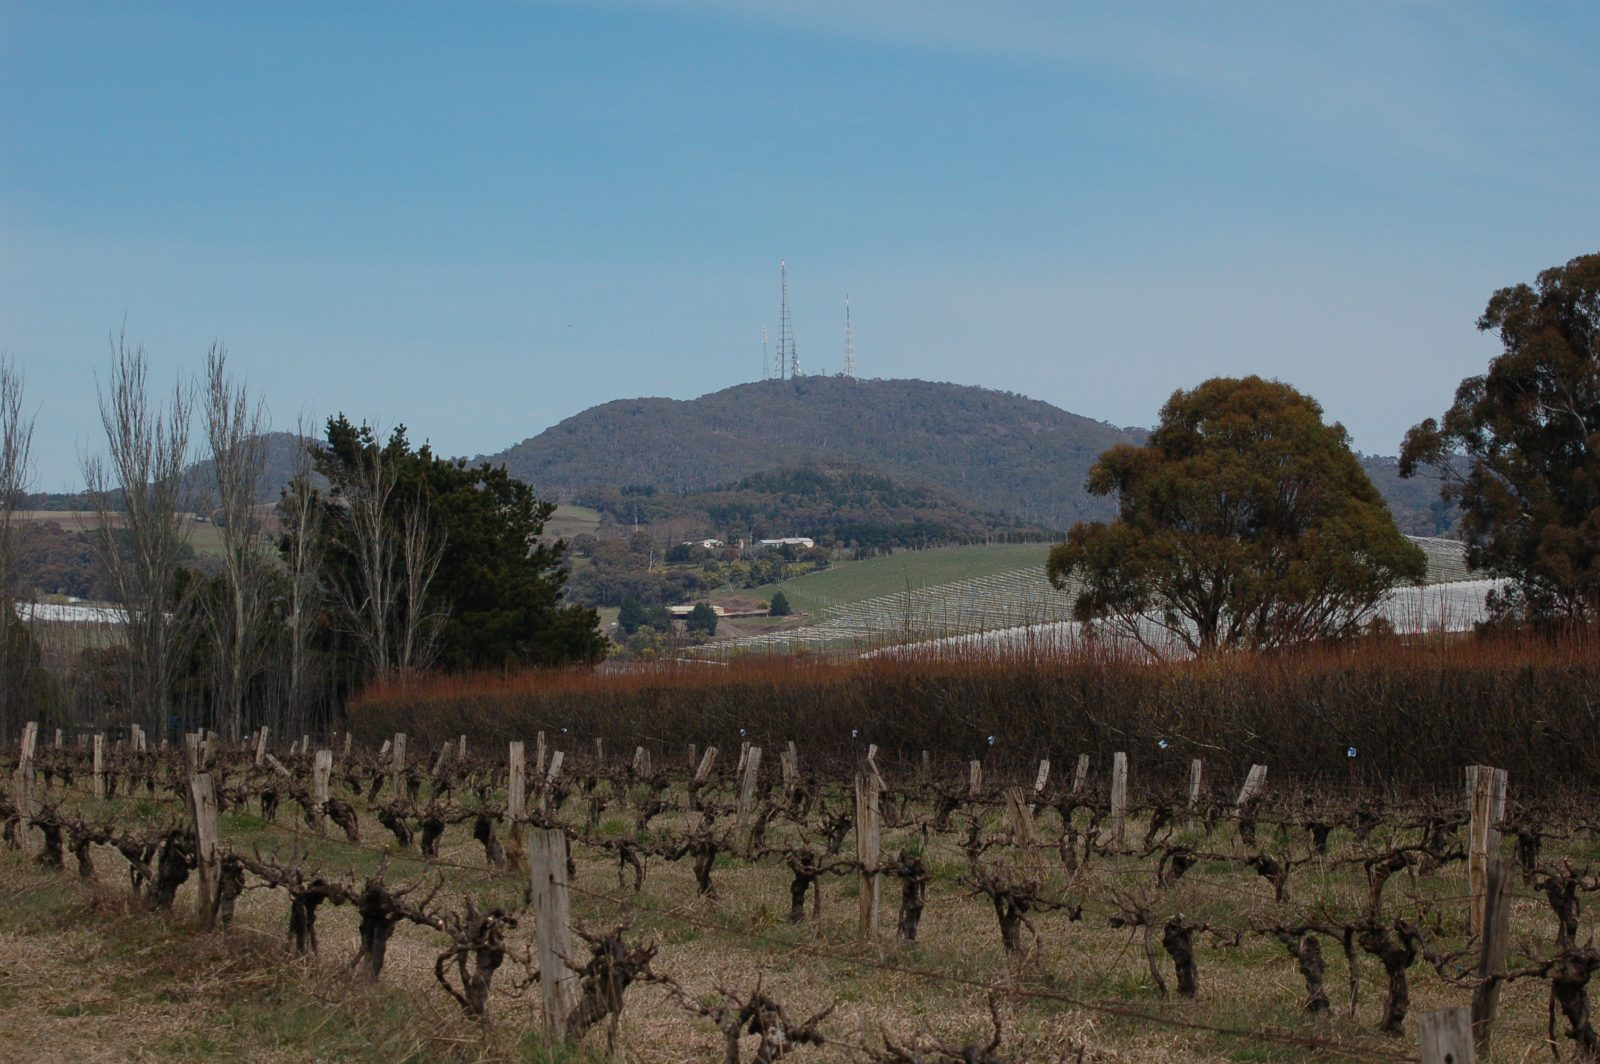 Thornbrook Orchard - set on the foothills of Mt Canobolas